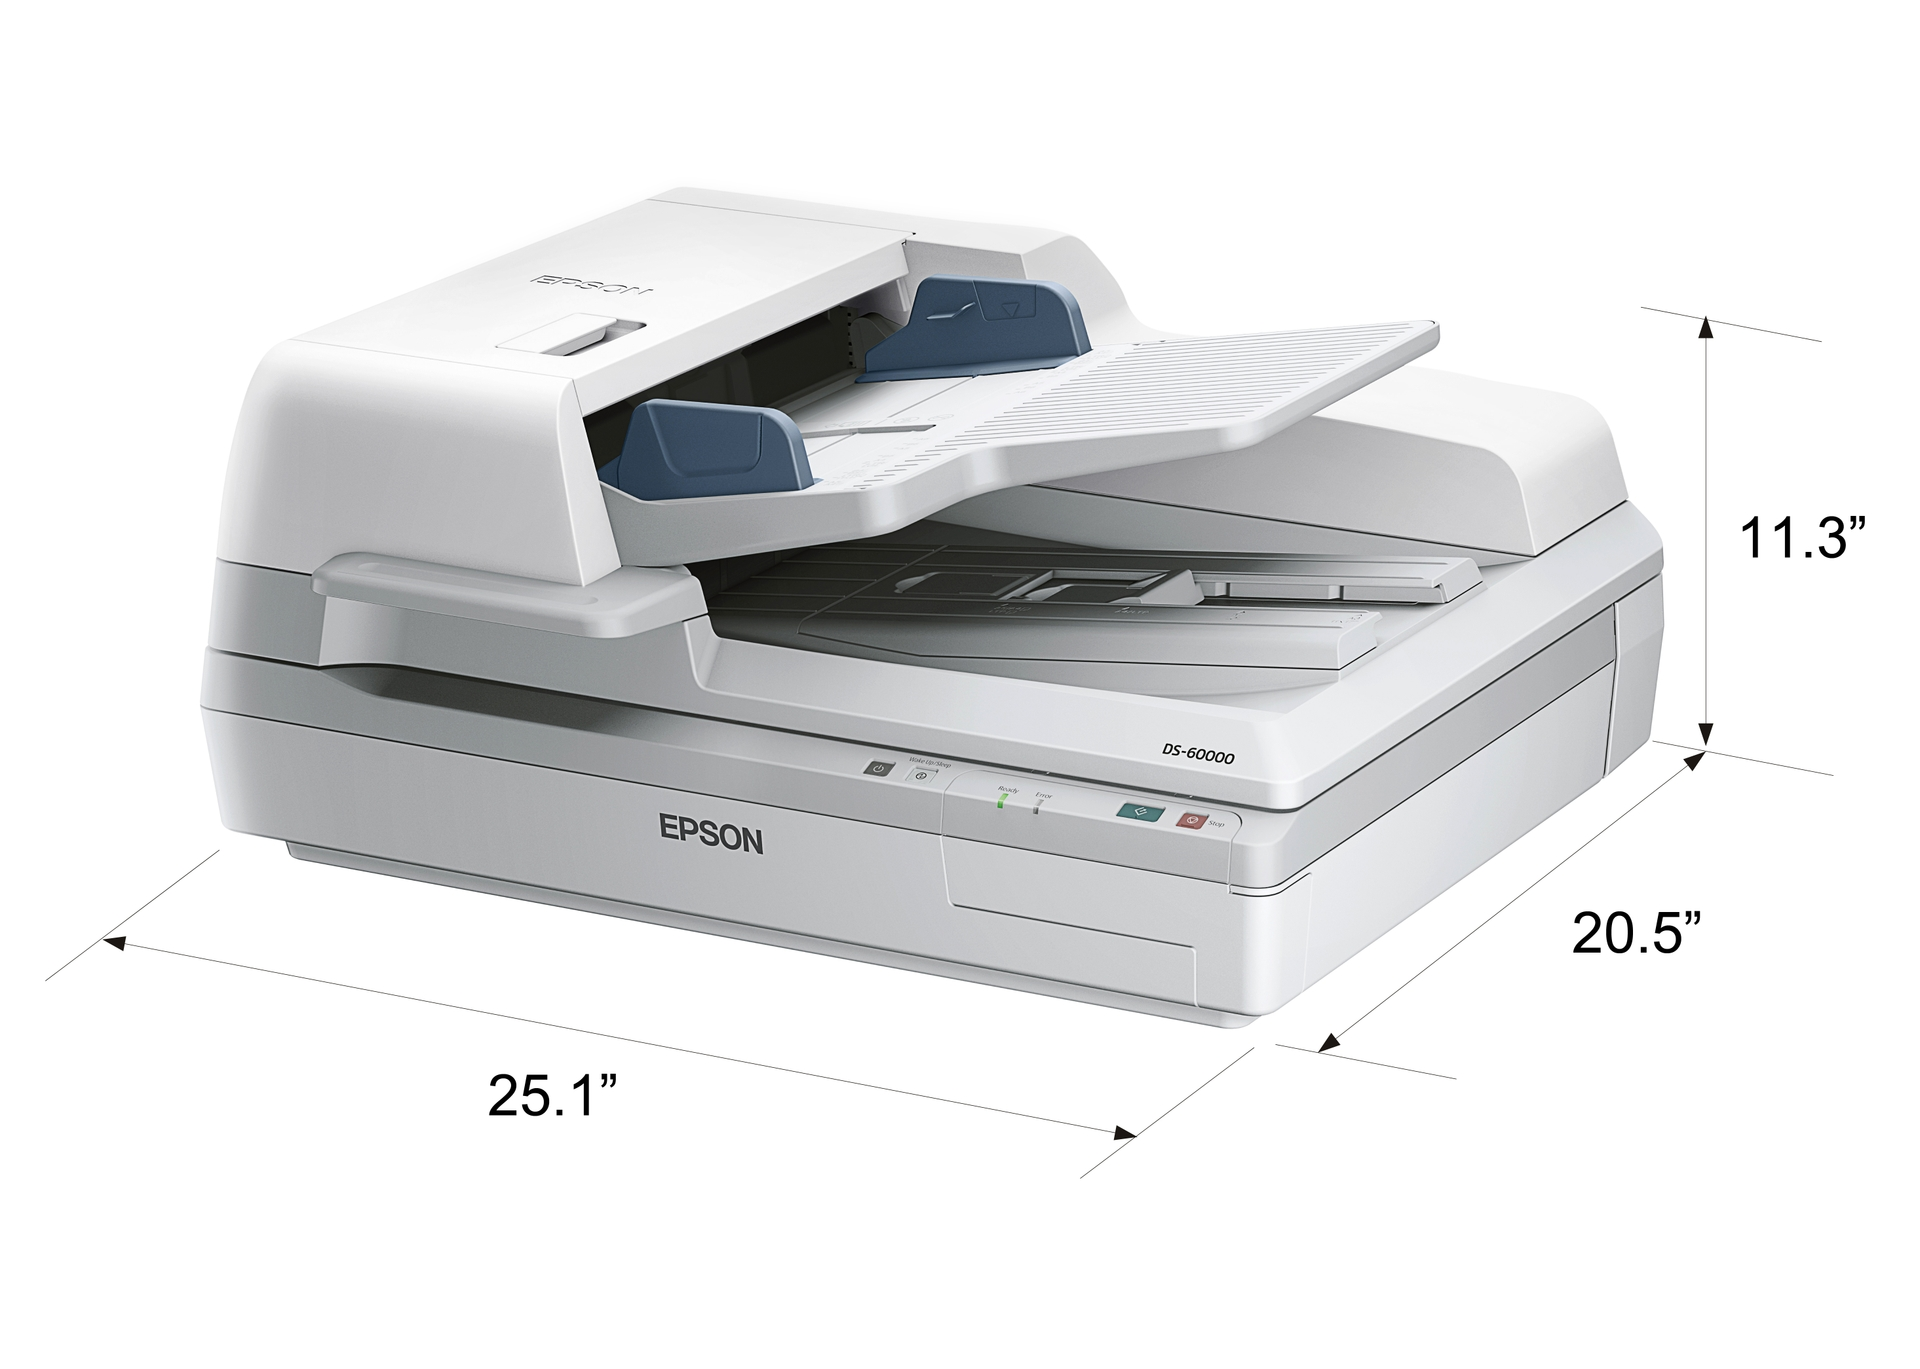 DS 60000 DIM INCHES